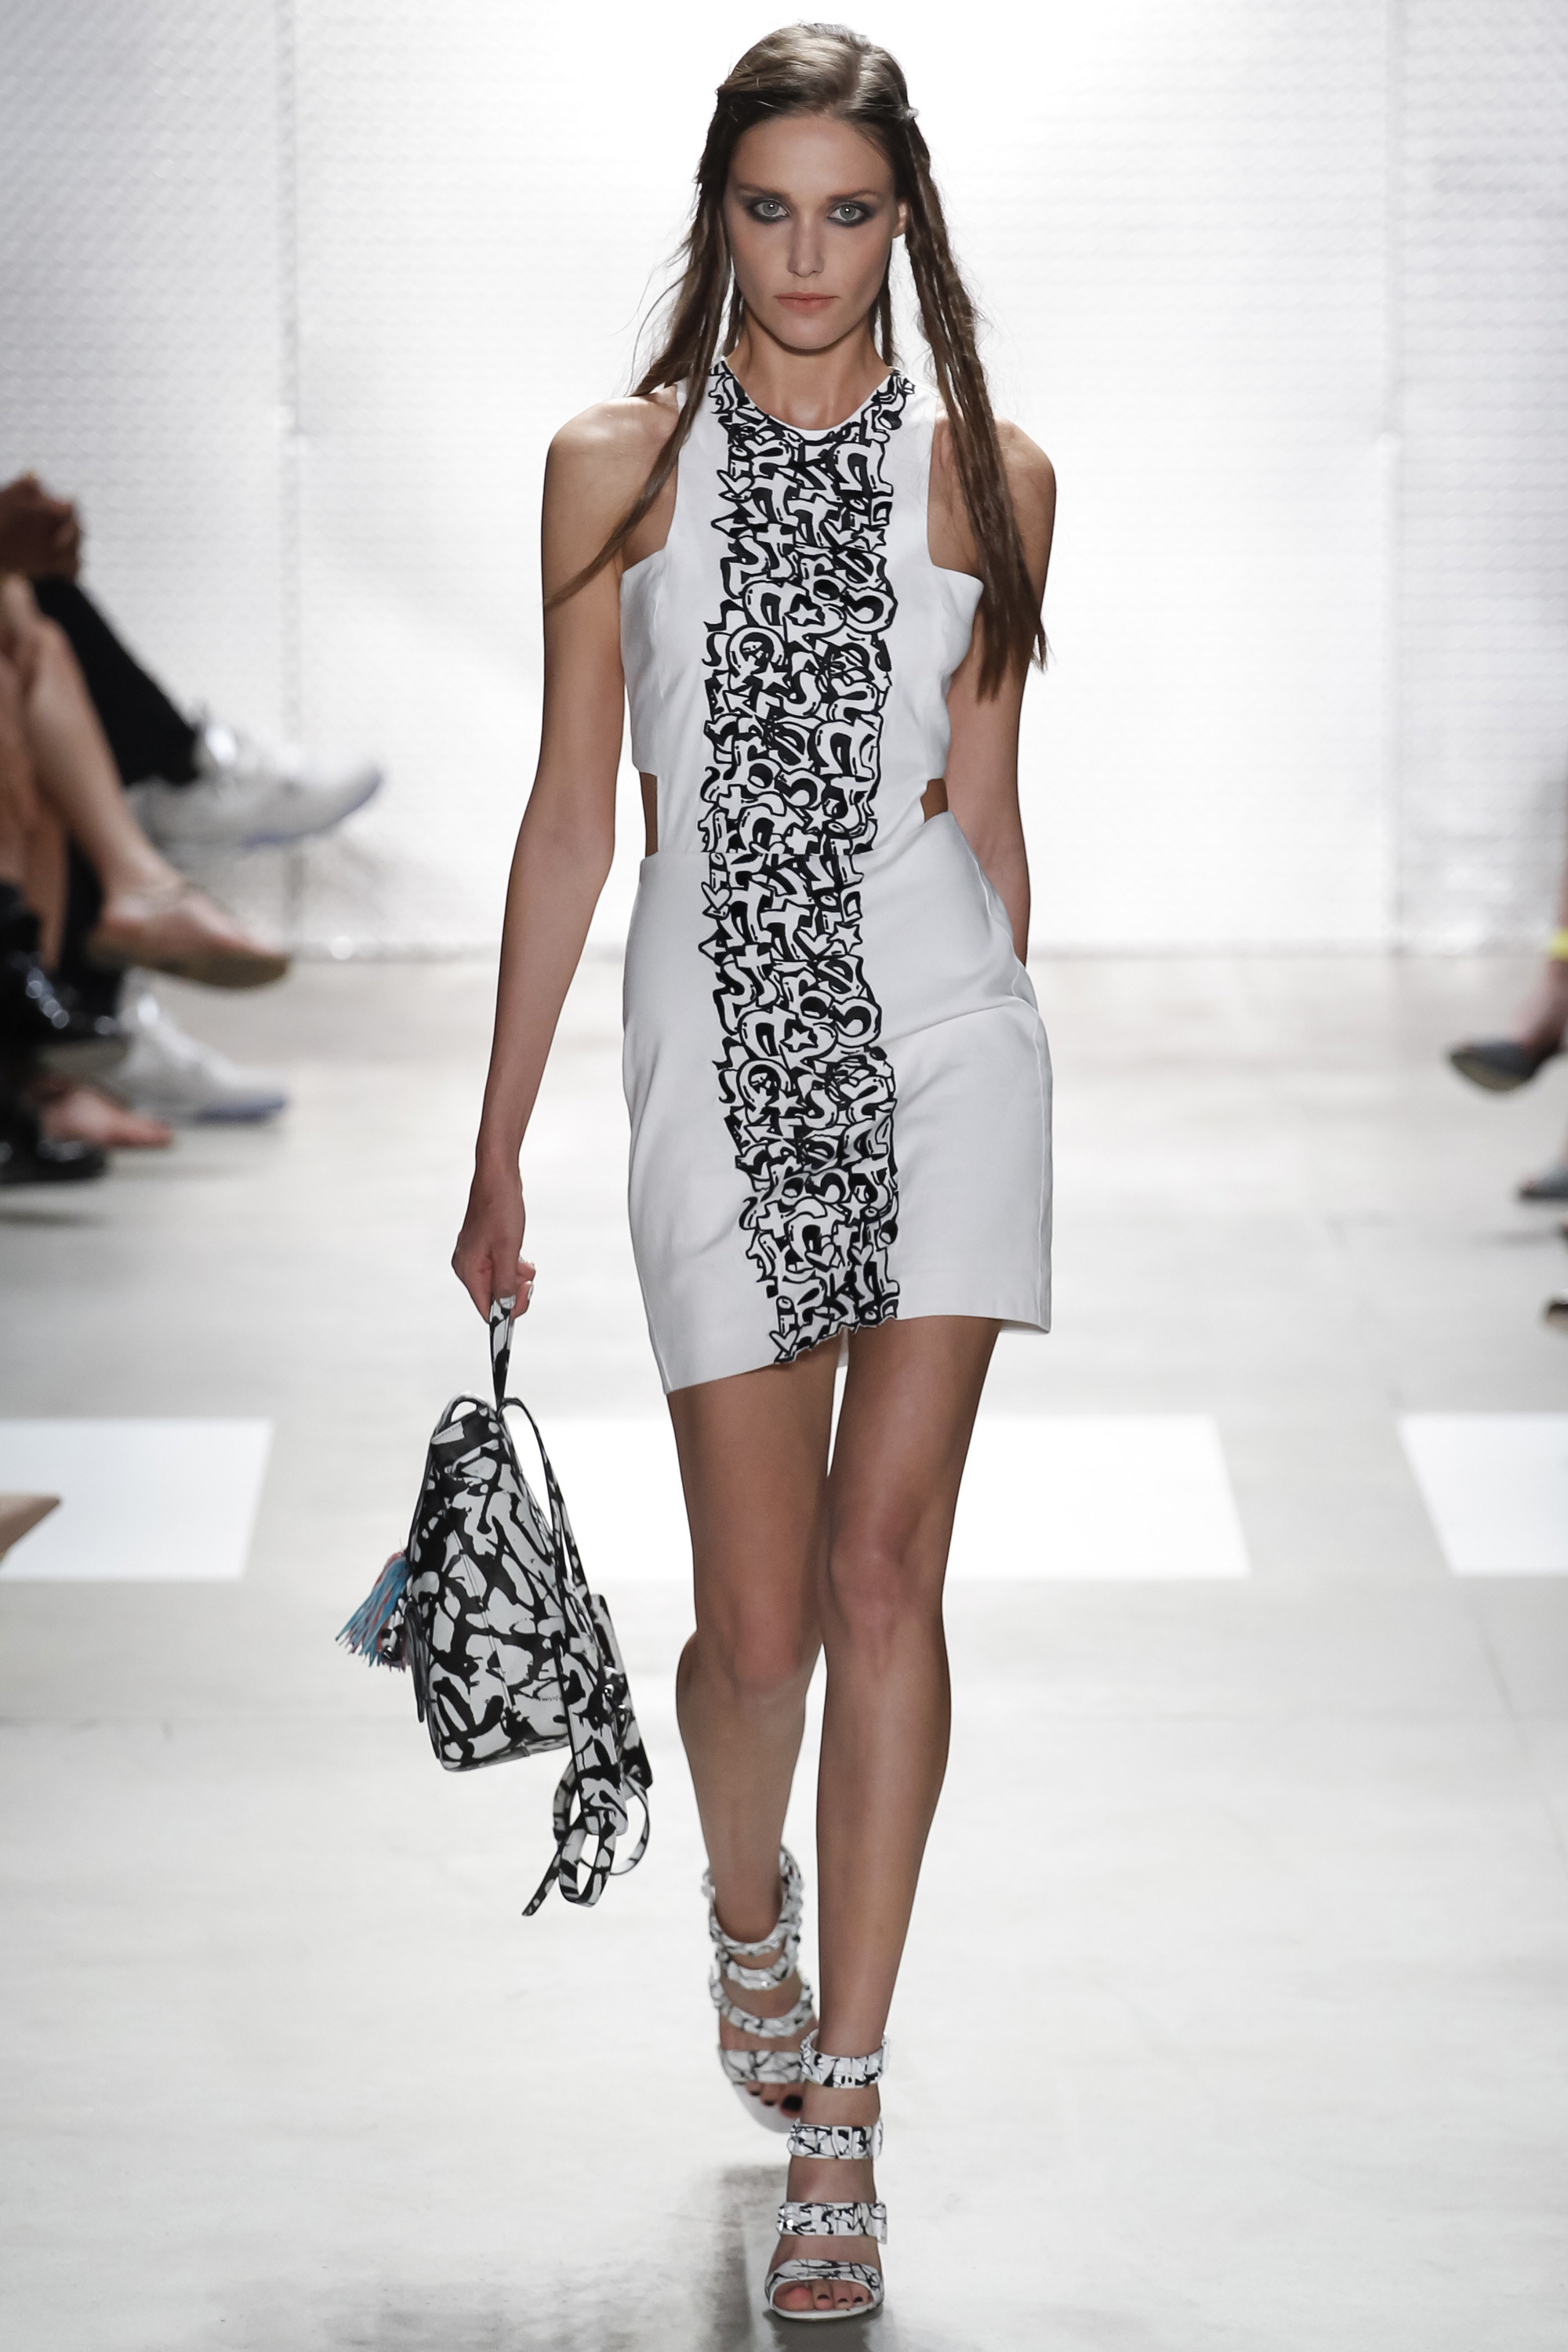 Nicole Miller    I'm getting a go-go dancer feel from this dress, but at the same time it's really chic because of the black and white color scheme. I'm all about matching so I love that the bag and shoes have the same print as the dress.